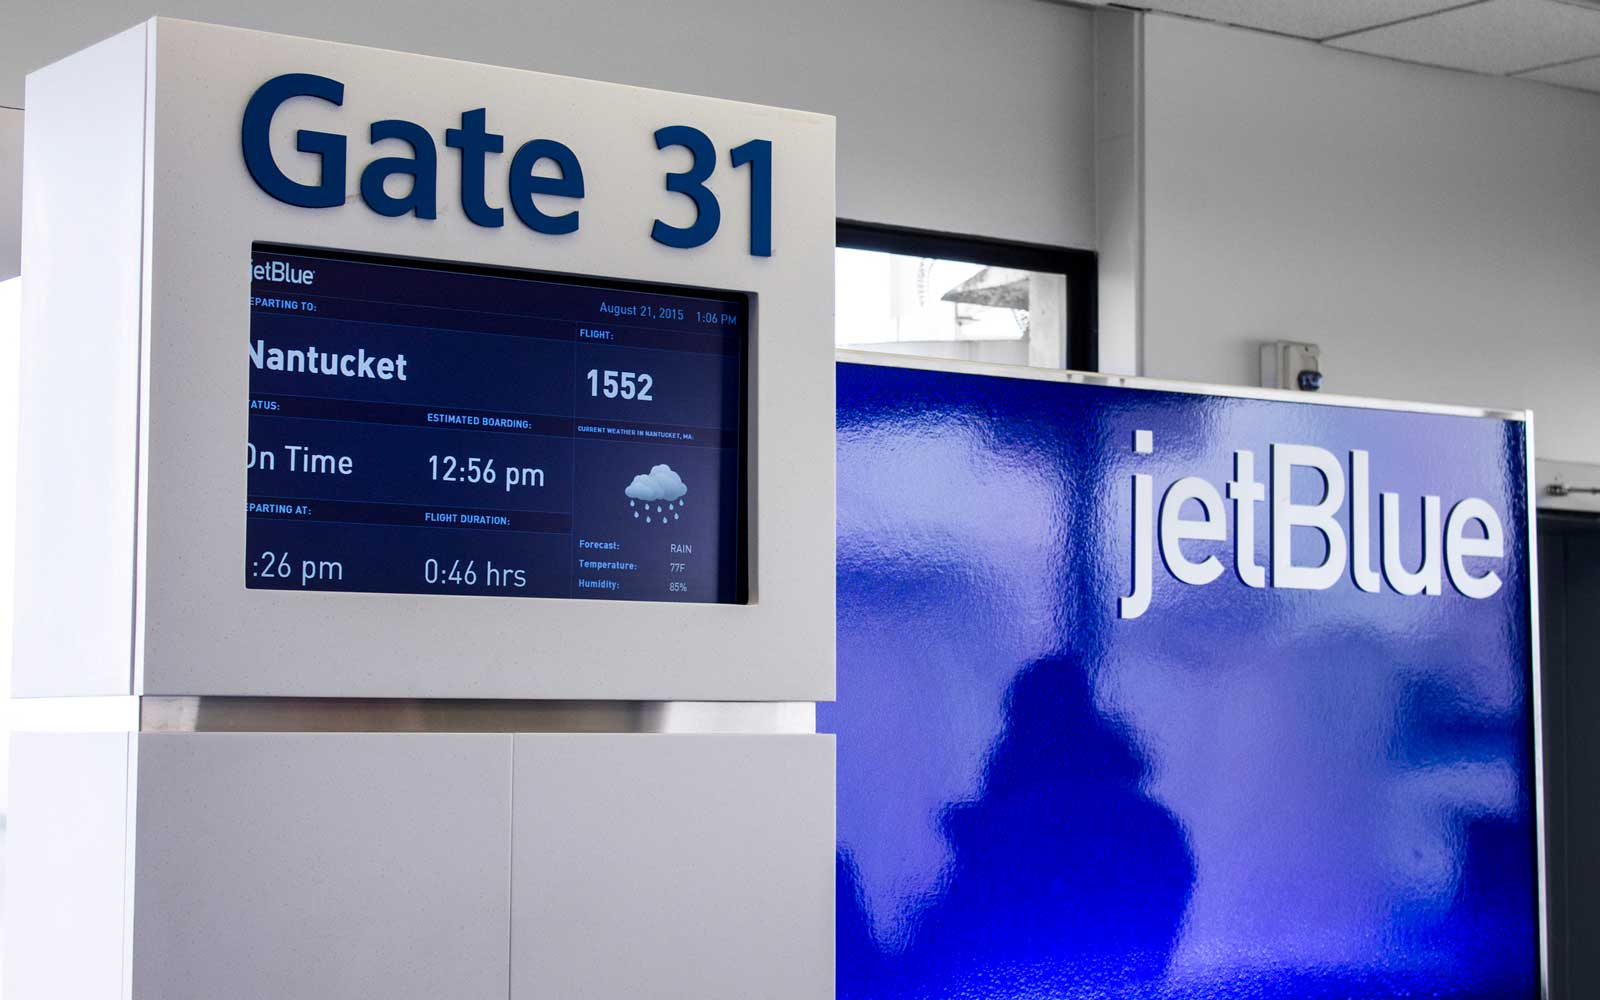 JetBlue gate at airport